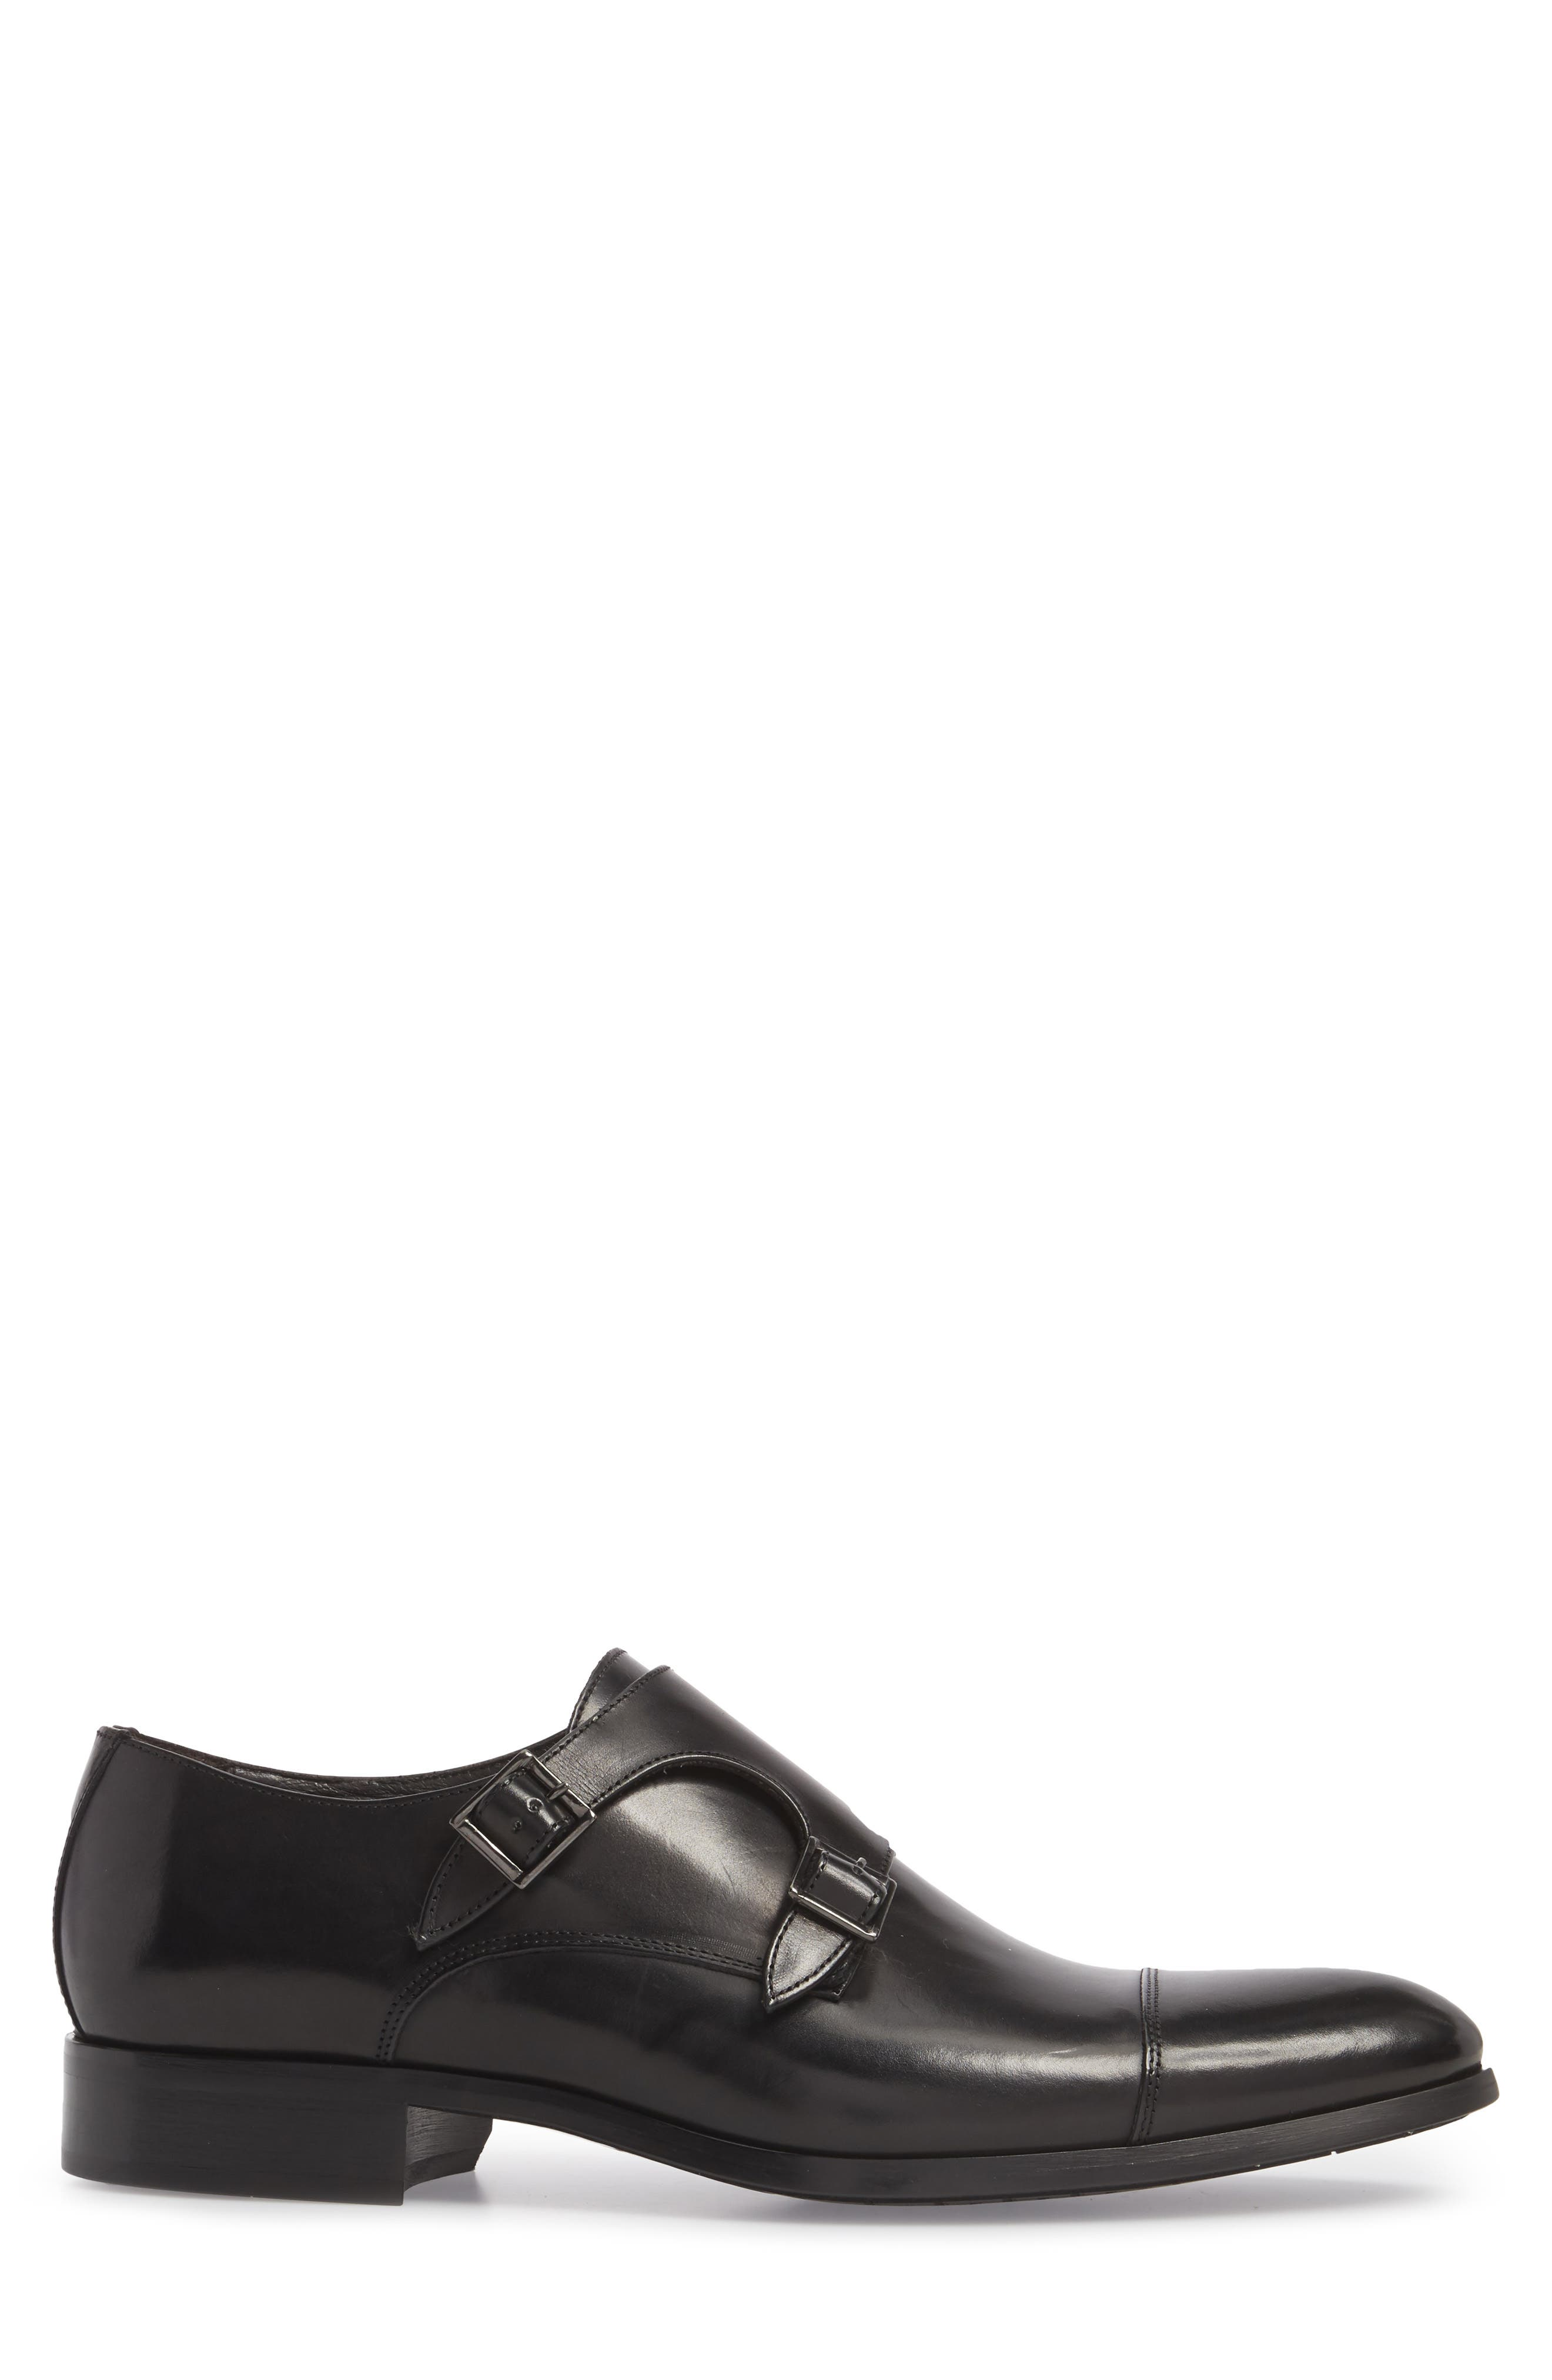 TO BOOT NEW YORK, Bankston Cap Toe Double Strap Monk Shoe, Alternate thumbnail 3, color, BLACK LEATHER